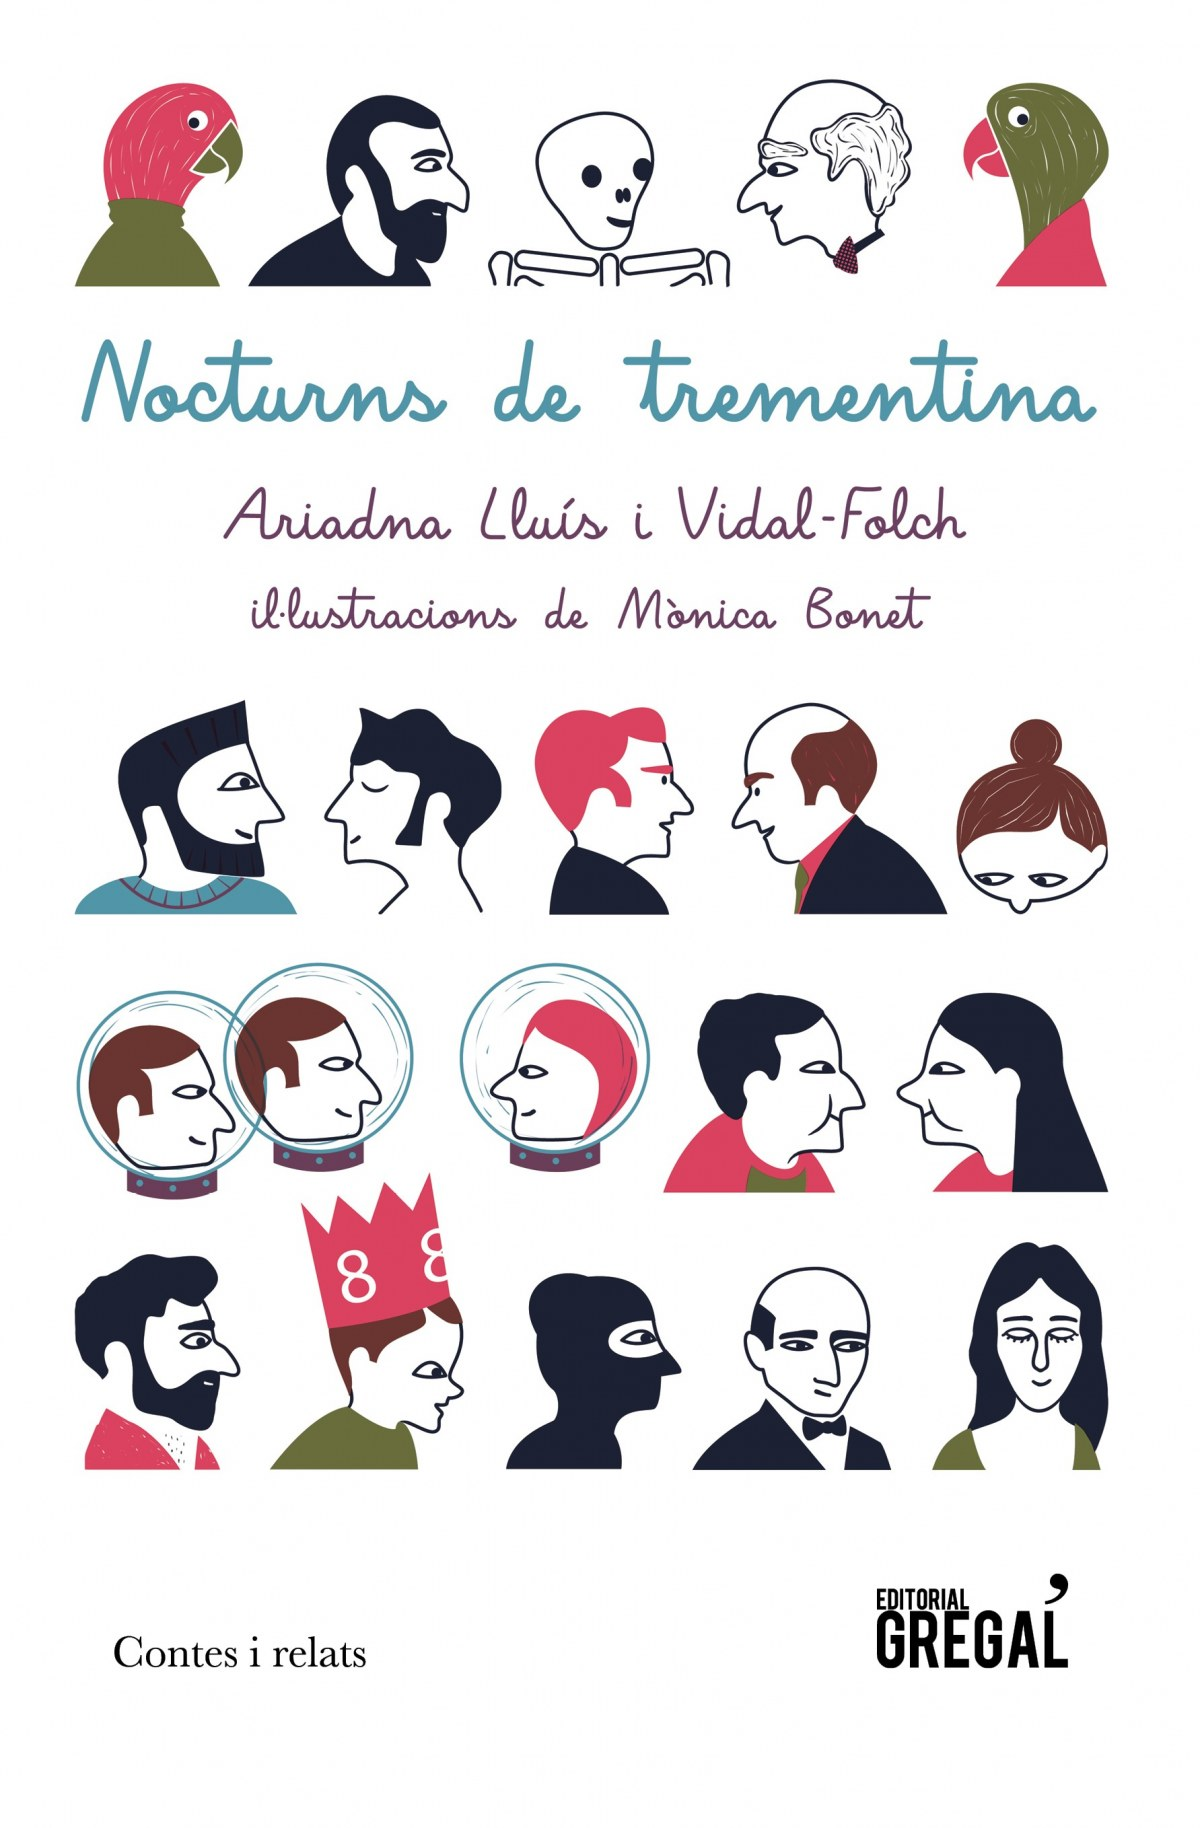 NOCTURNS DE TREMENTINA